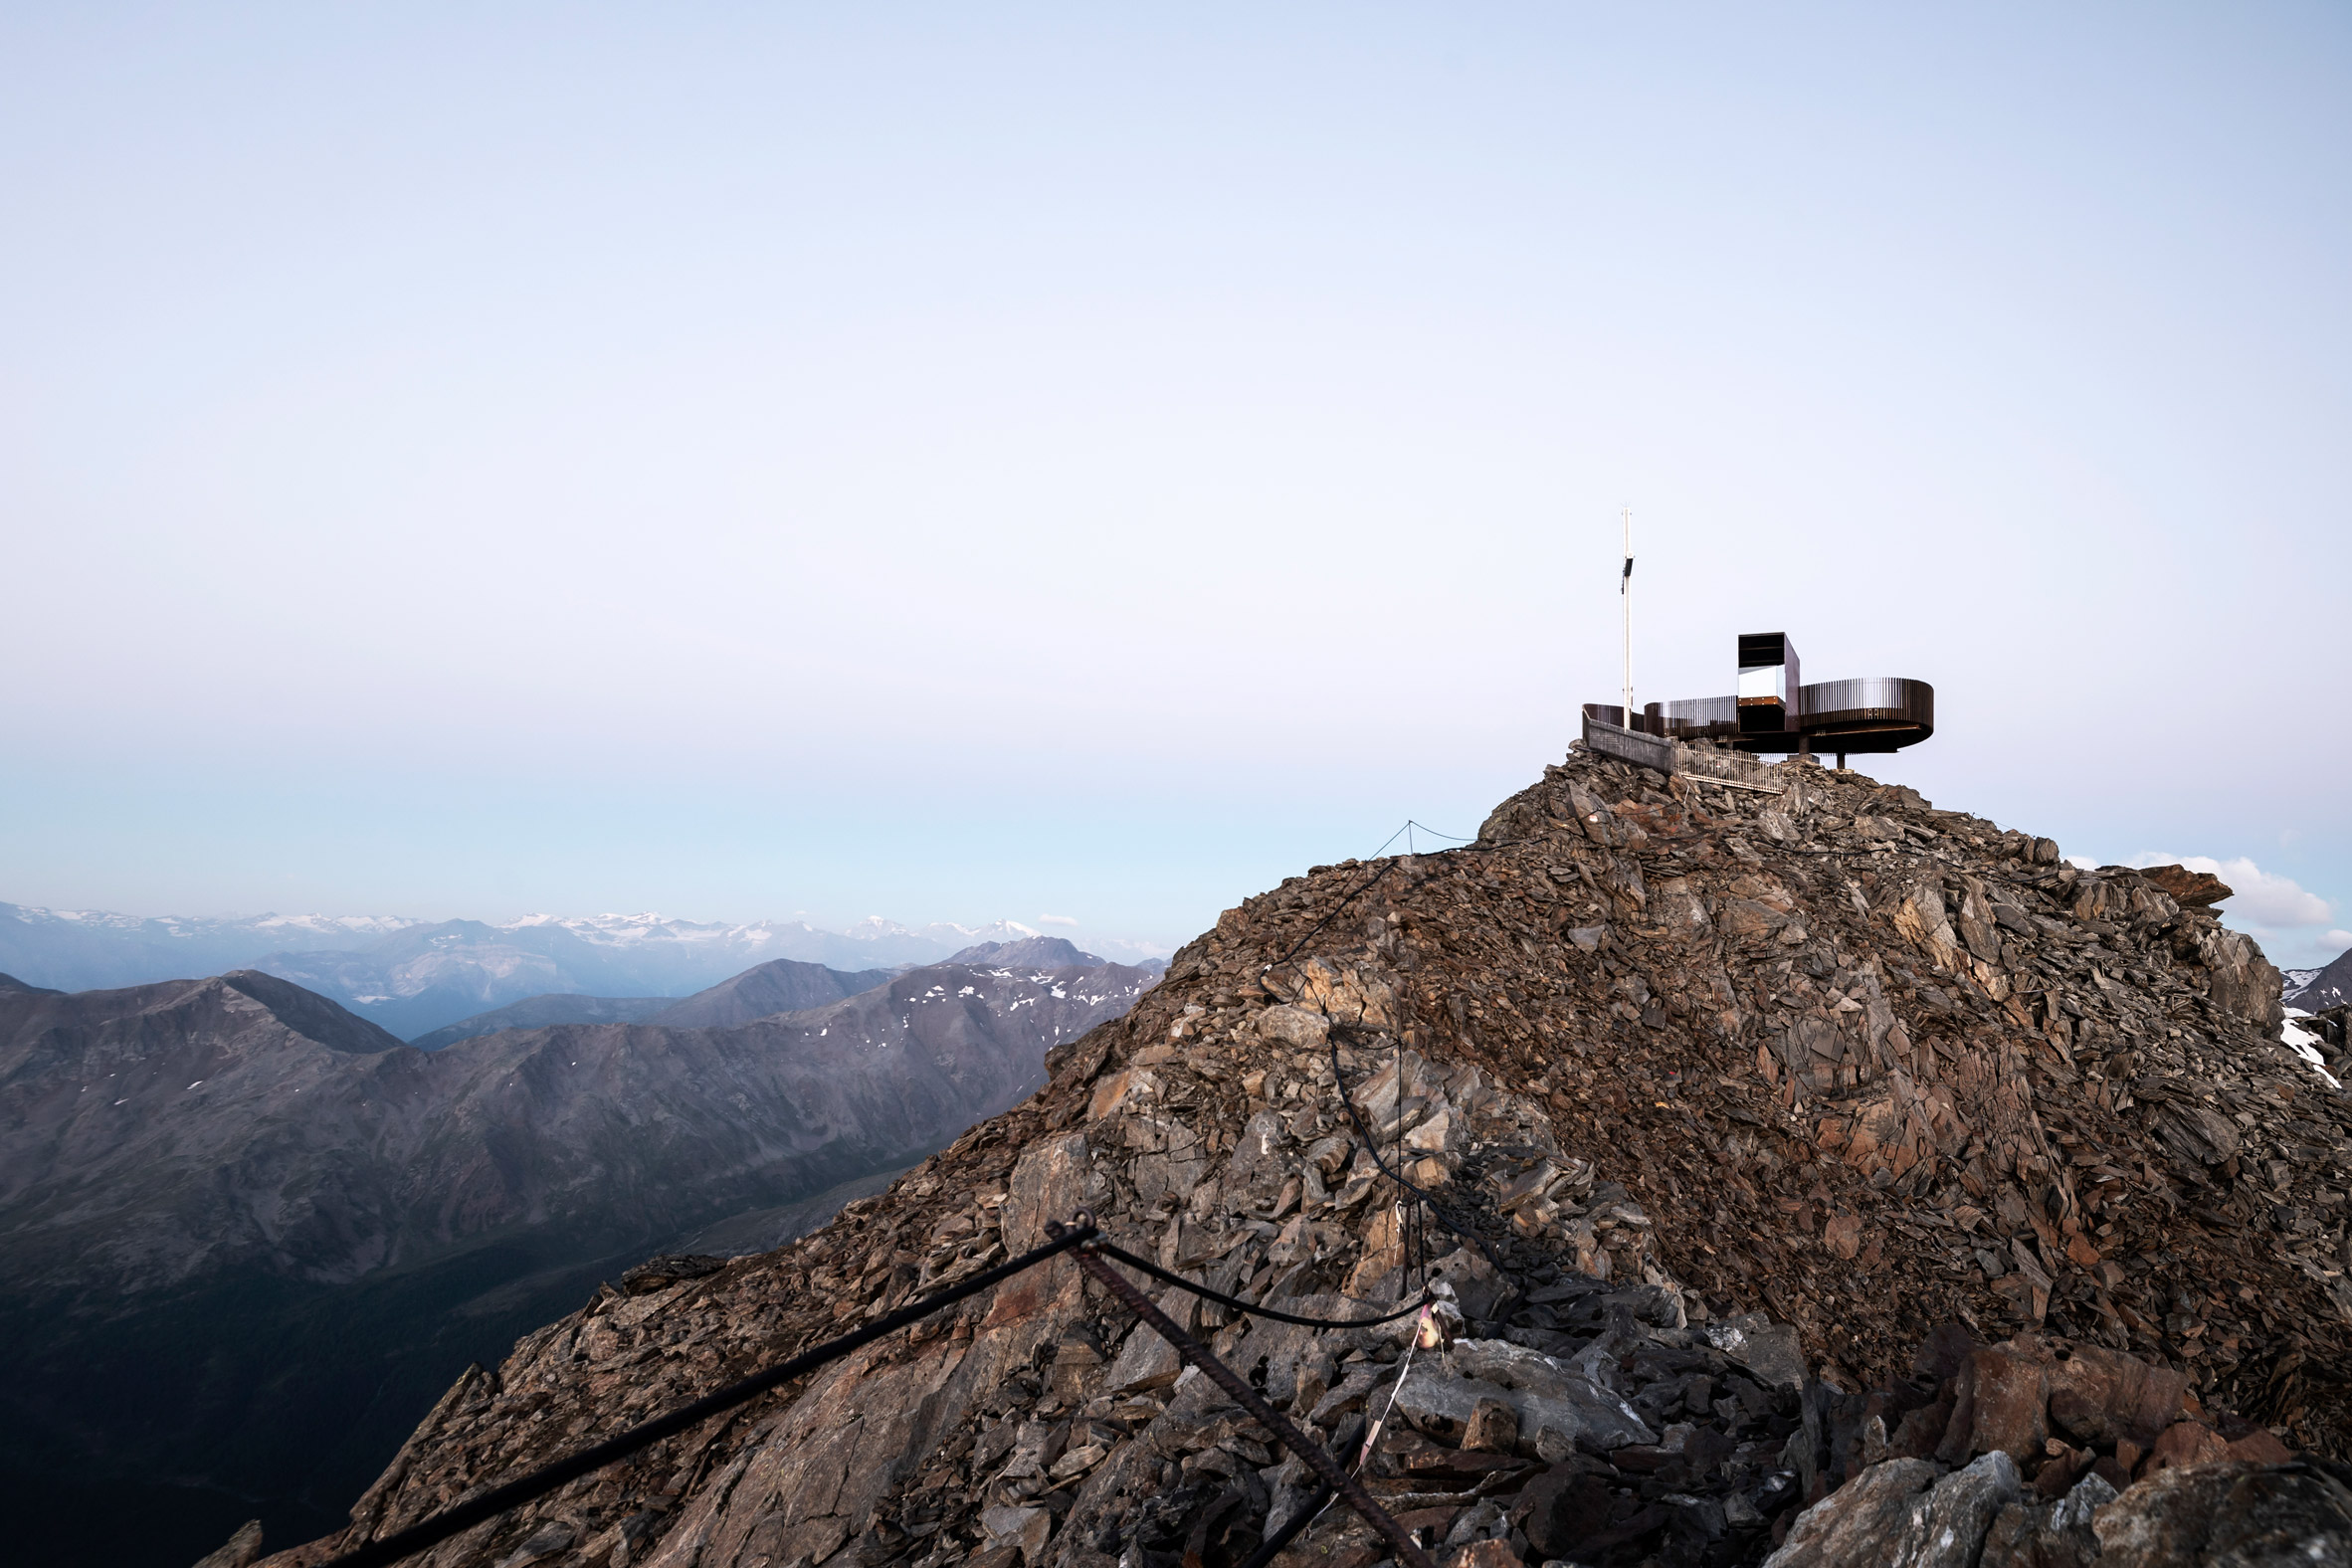 Viewing platform overlooks glacier on top of mountain ridge in South Tyrol